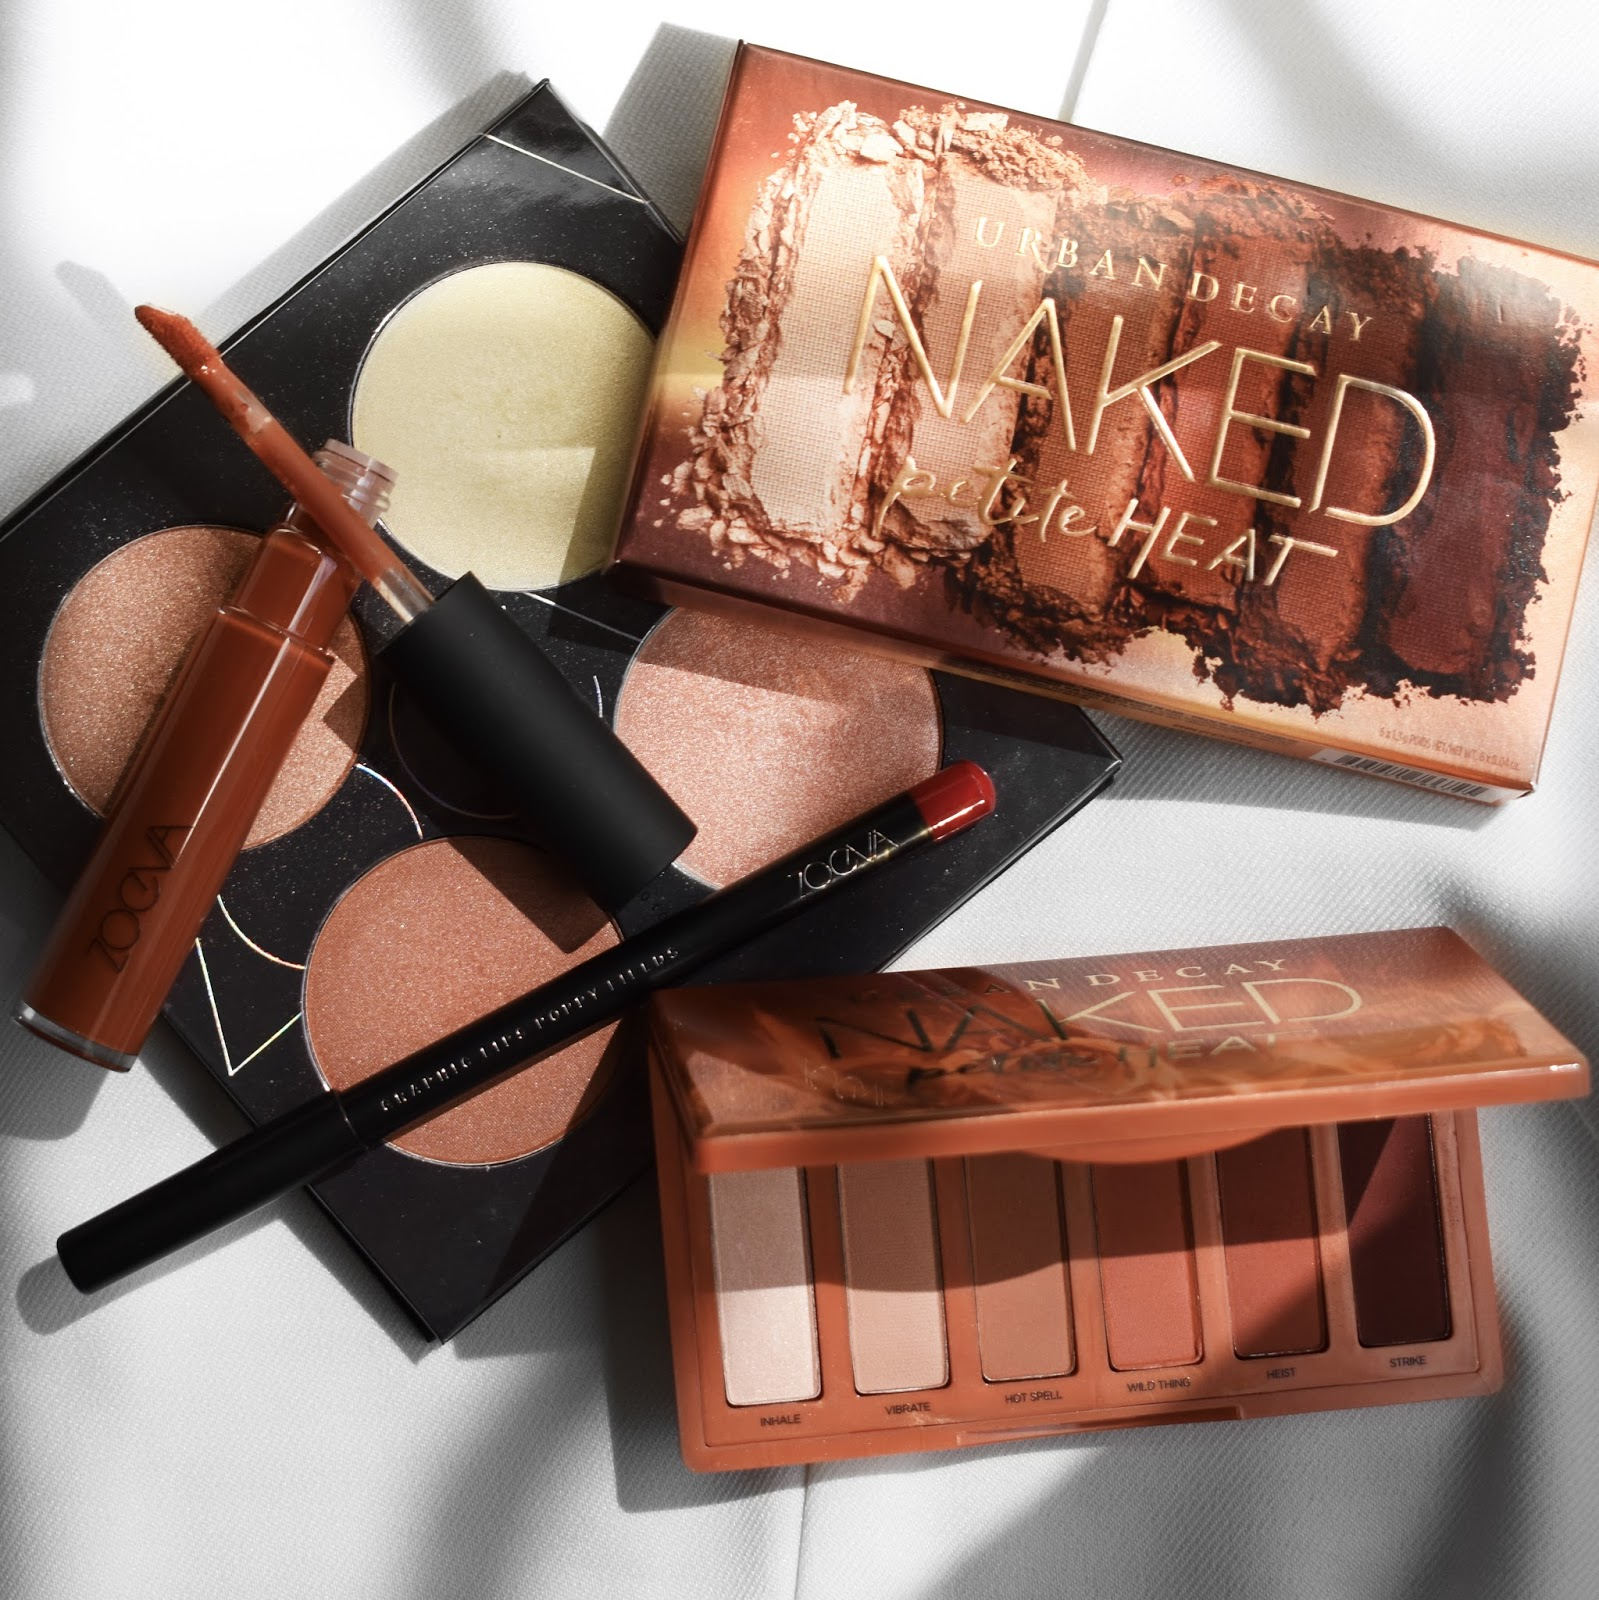 maquillaje con naked heat petite palette makeup look warm tones beauty blogger de belleza mexicana mexico 2